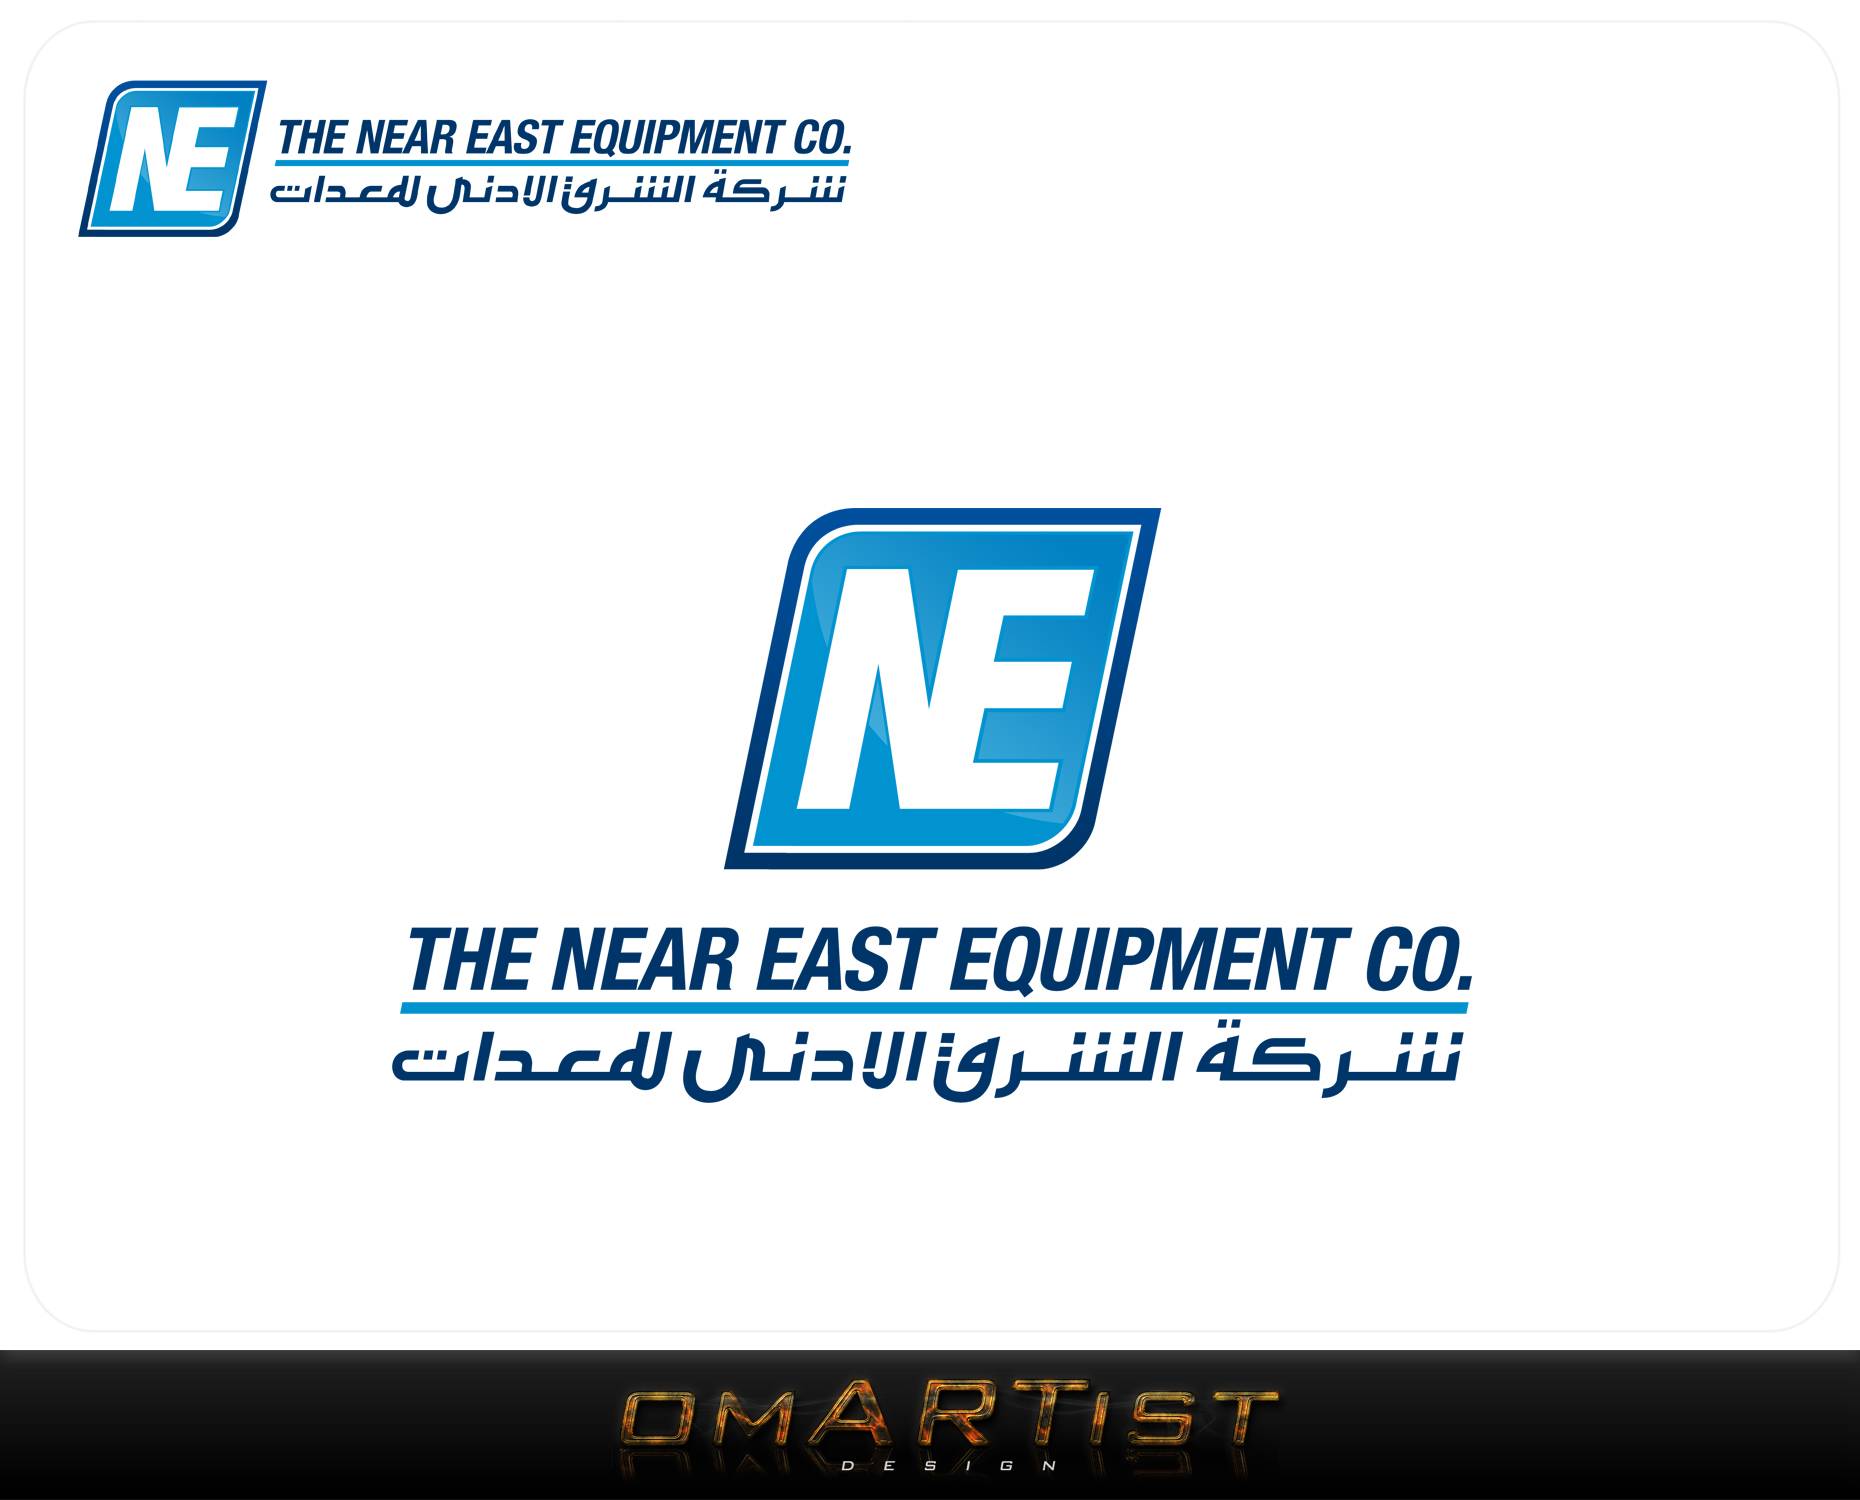 Logo Design by omARTist - Entry No. 118 in the Logo Design Contest Imaginative Logo Design for The Near East Equipment Co..